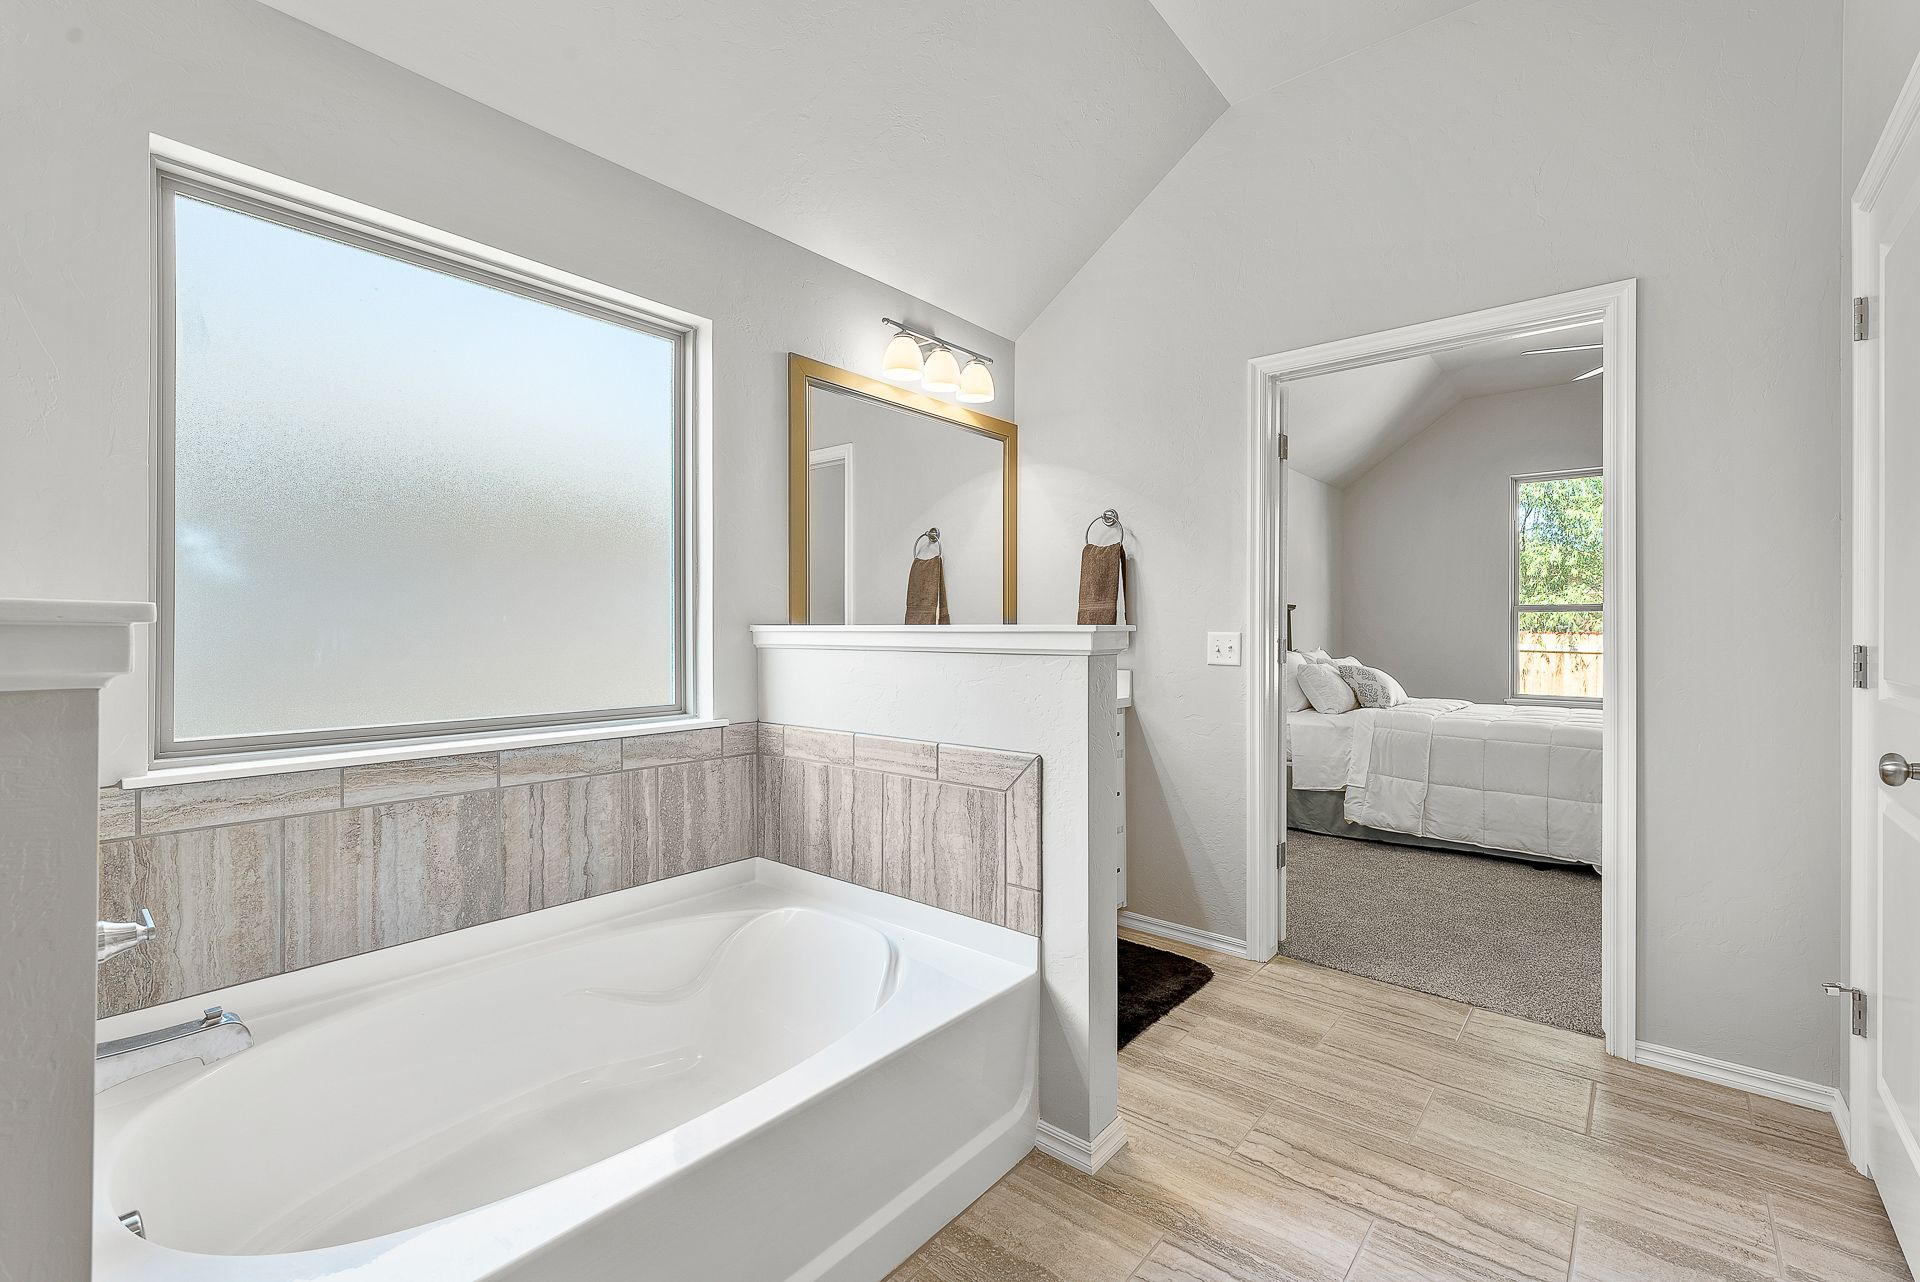 Bathroom featured in the Marietta By Ideal Homes in Oklahoma City, OK